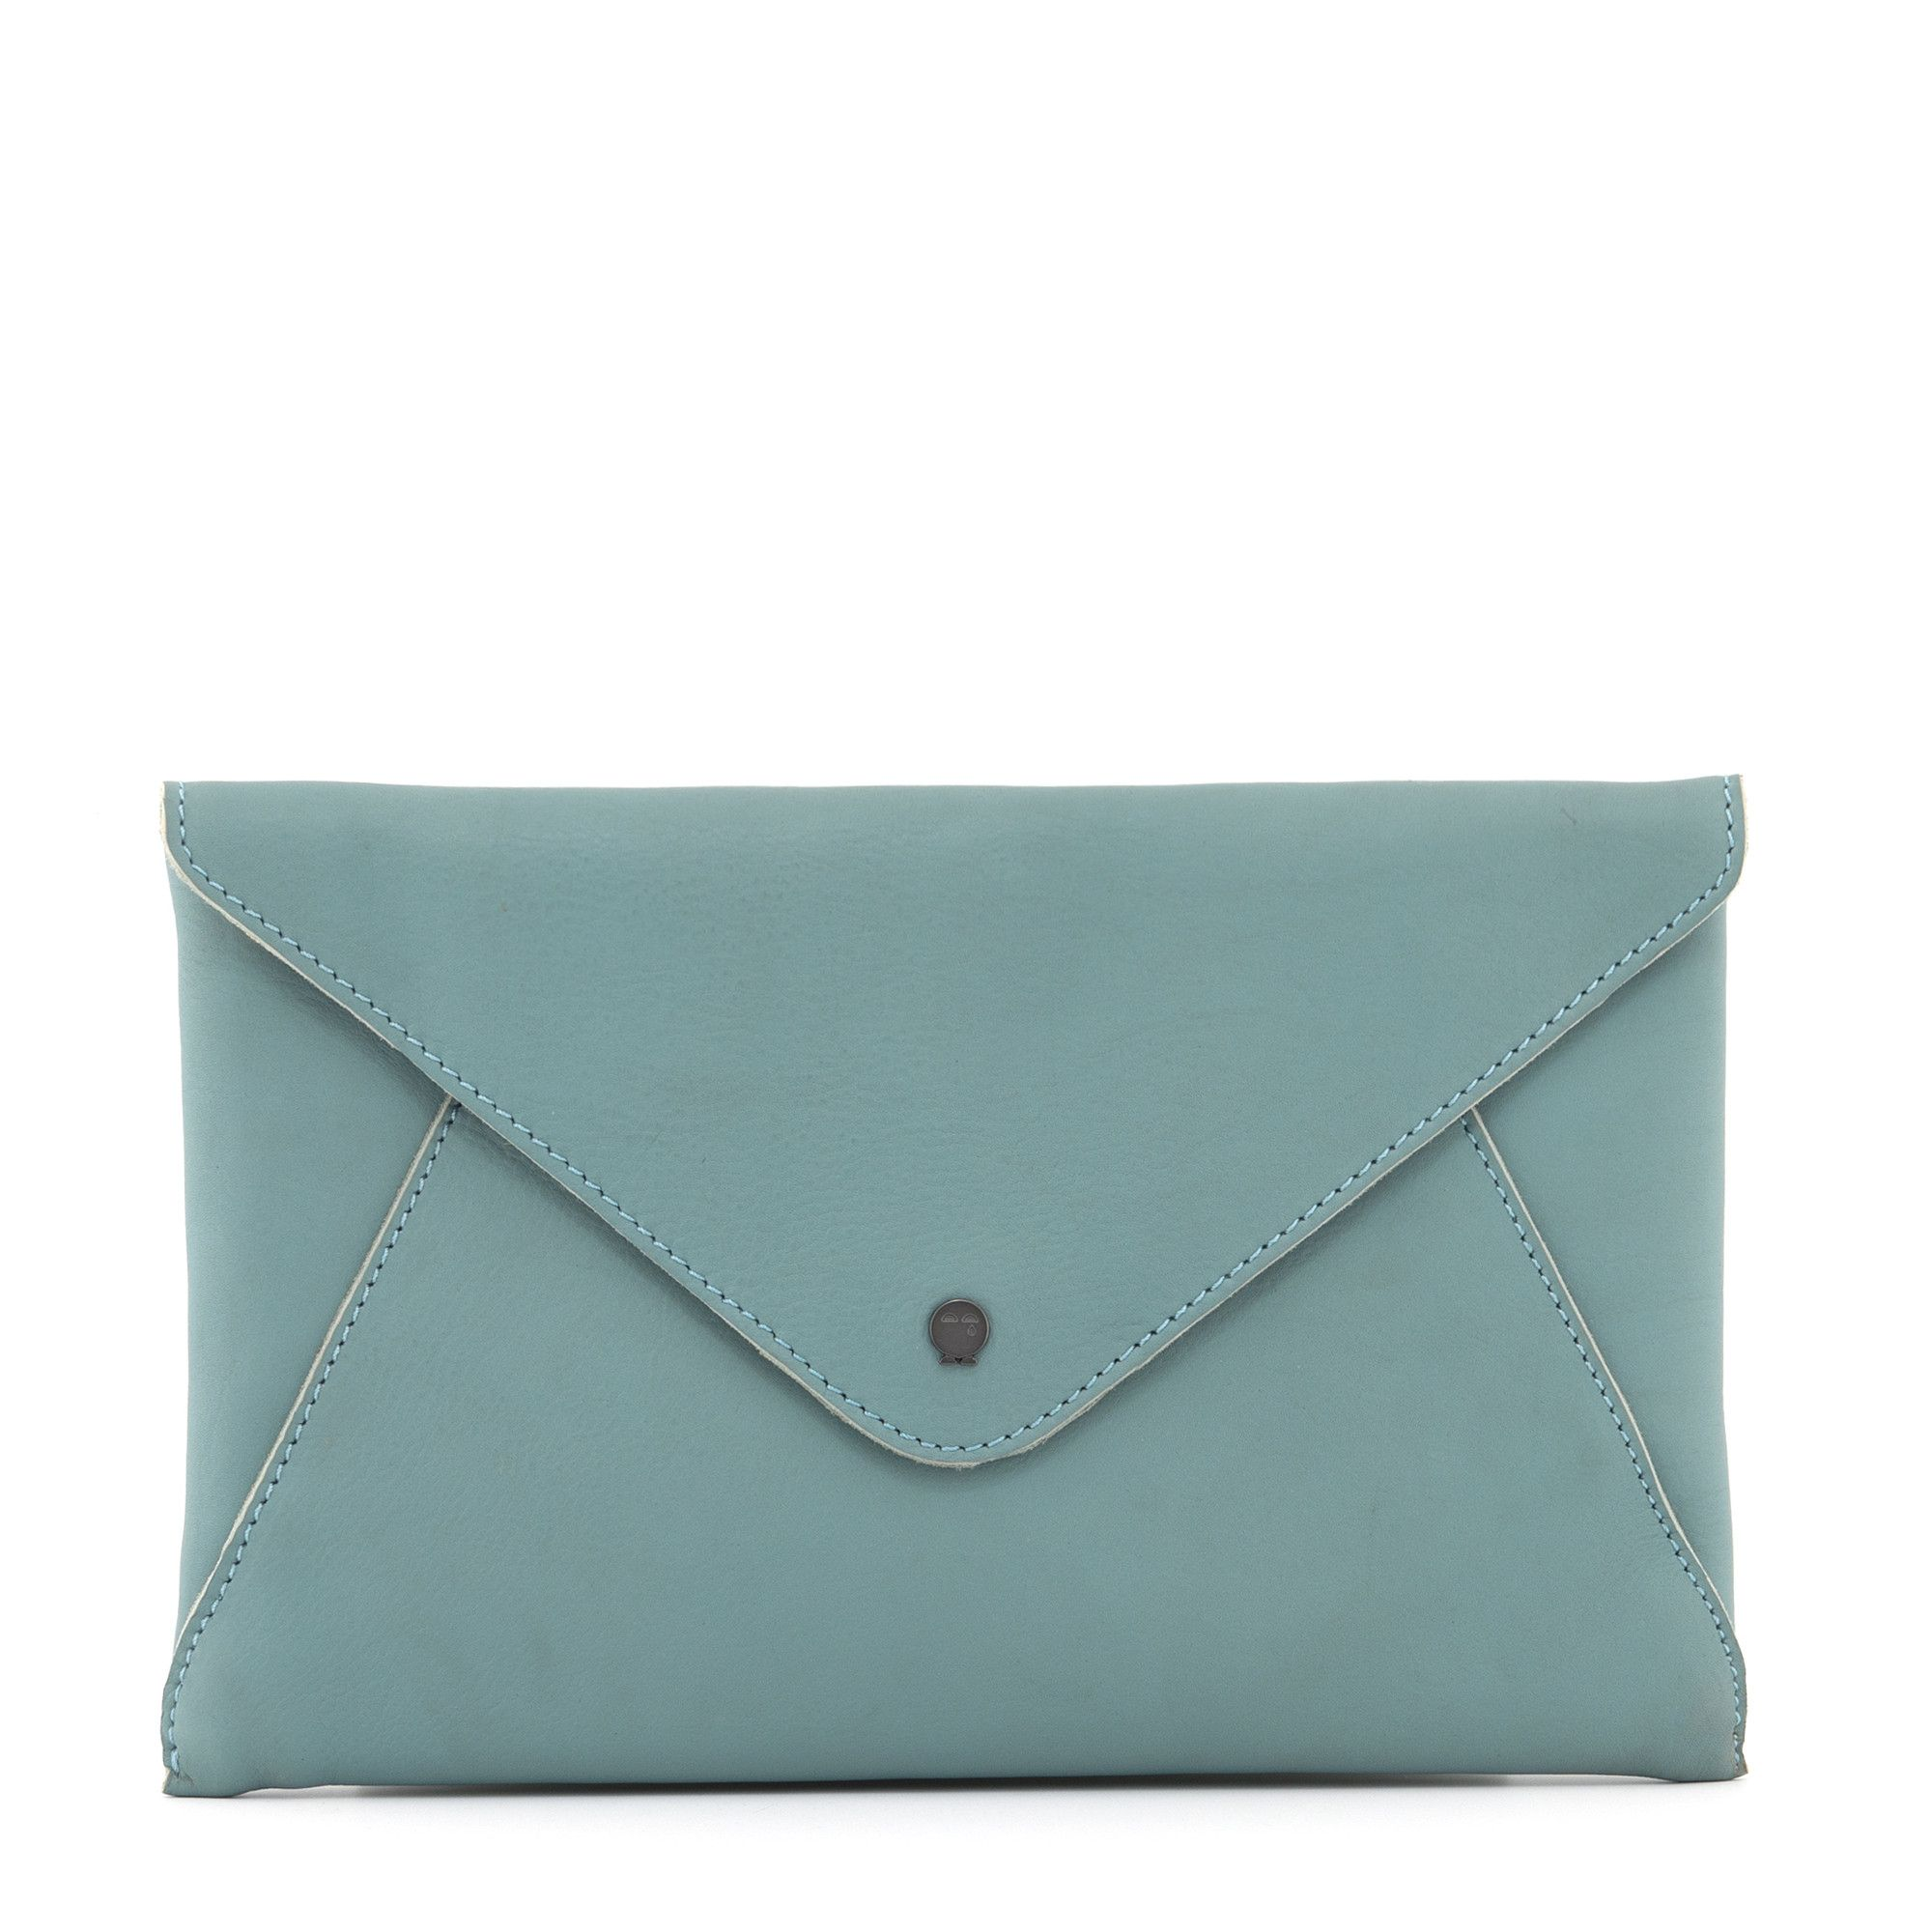 d3b23bb329b The Hepworth Duck Egg Blue Leather Envelope Clutch Bag by Yoshi ...